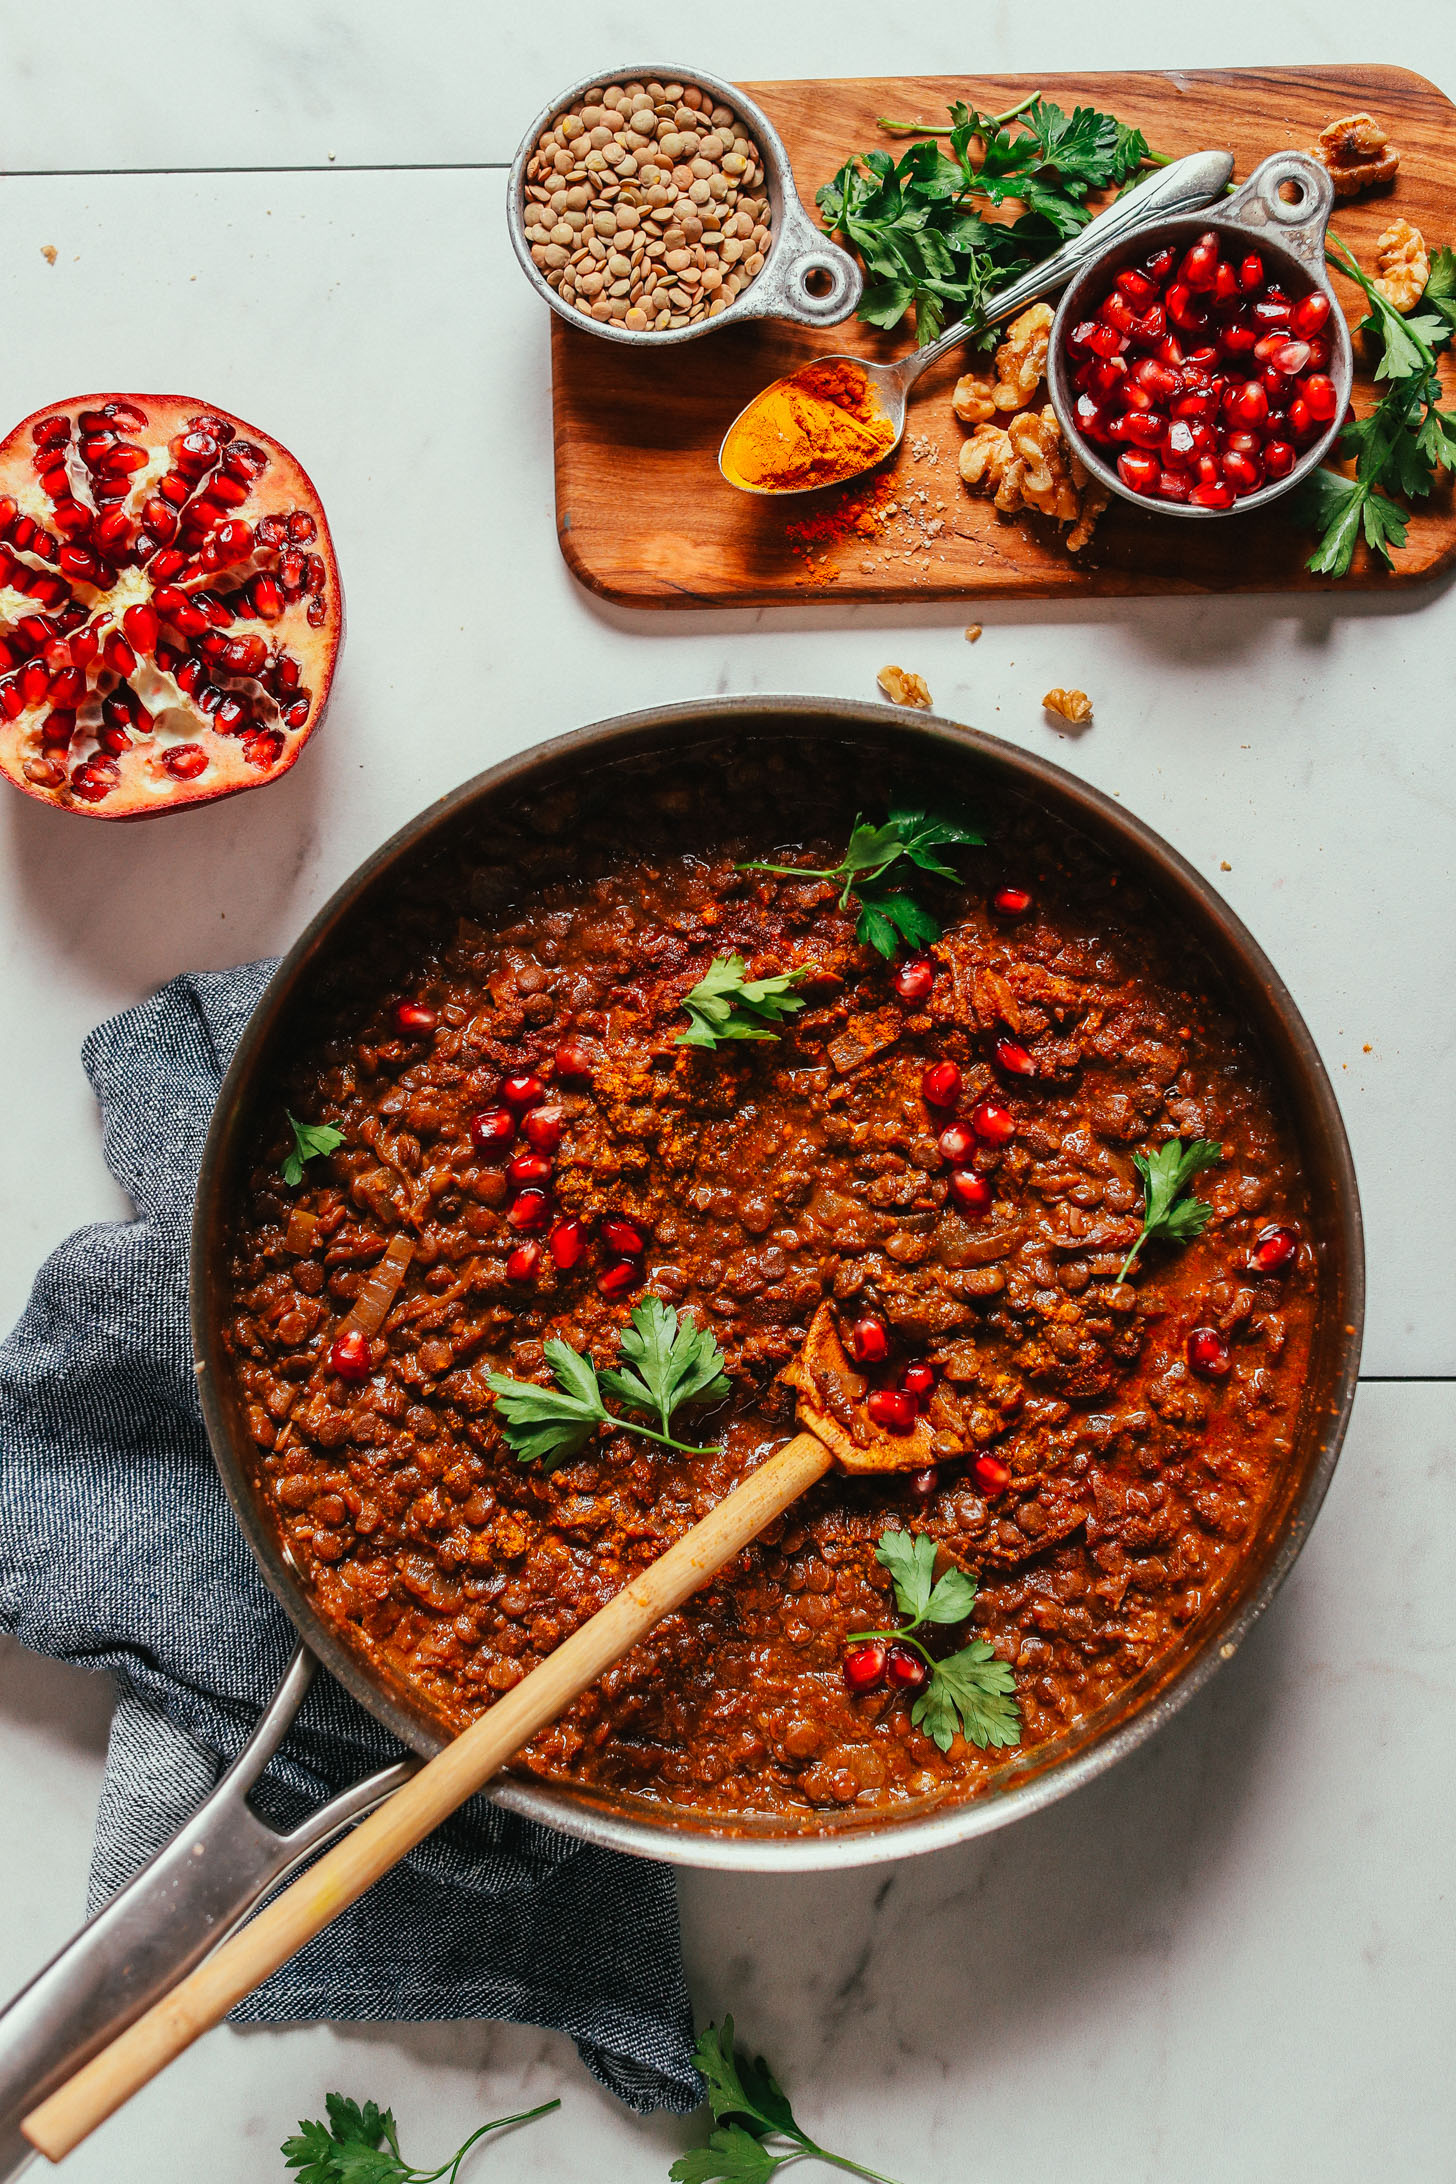 Large skillet filled with a batch of our hearty vegan Lentil Fesenjan recipe